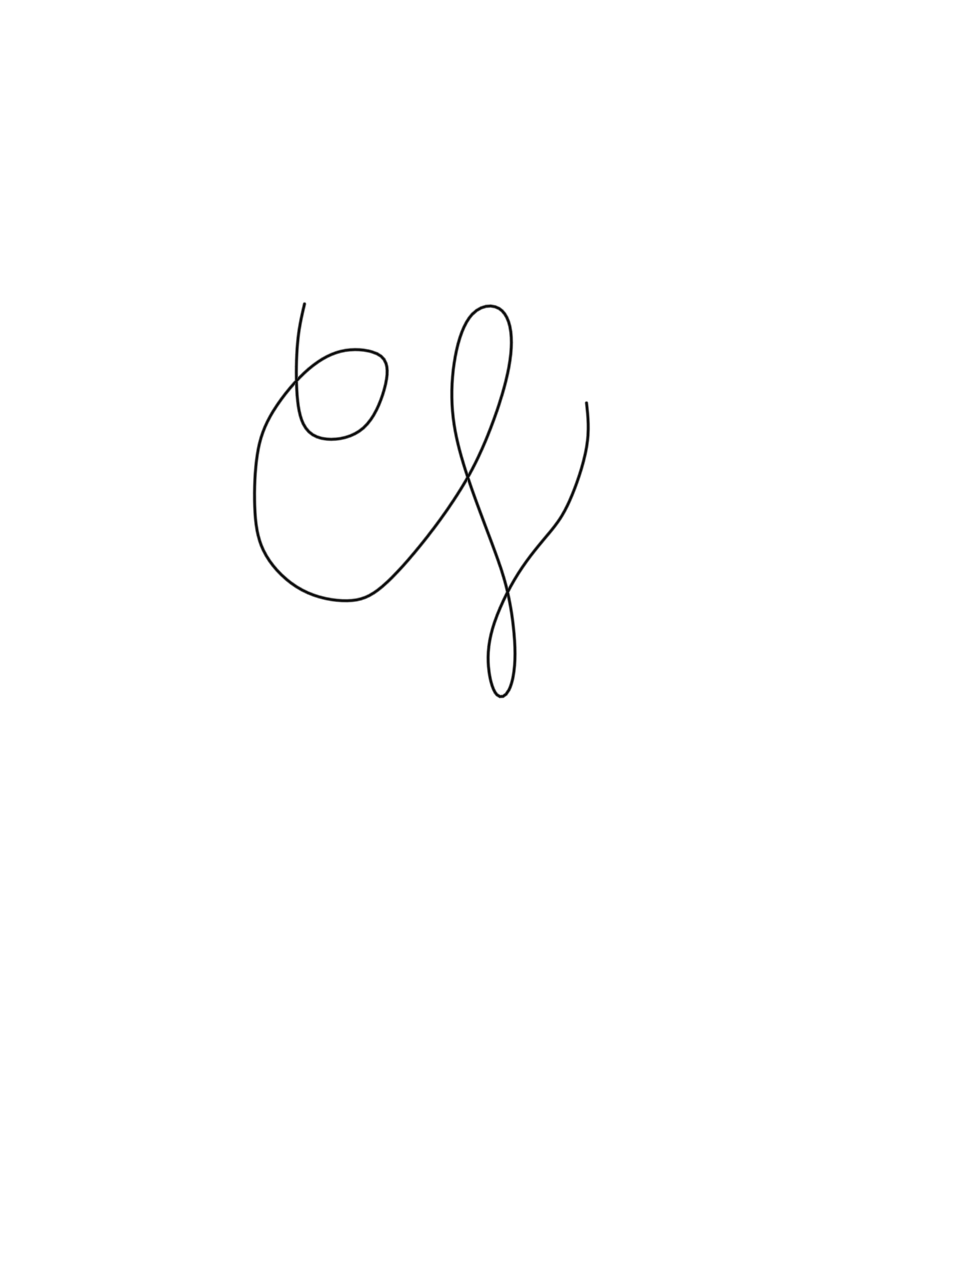 Catherine Fridey's Signature